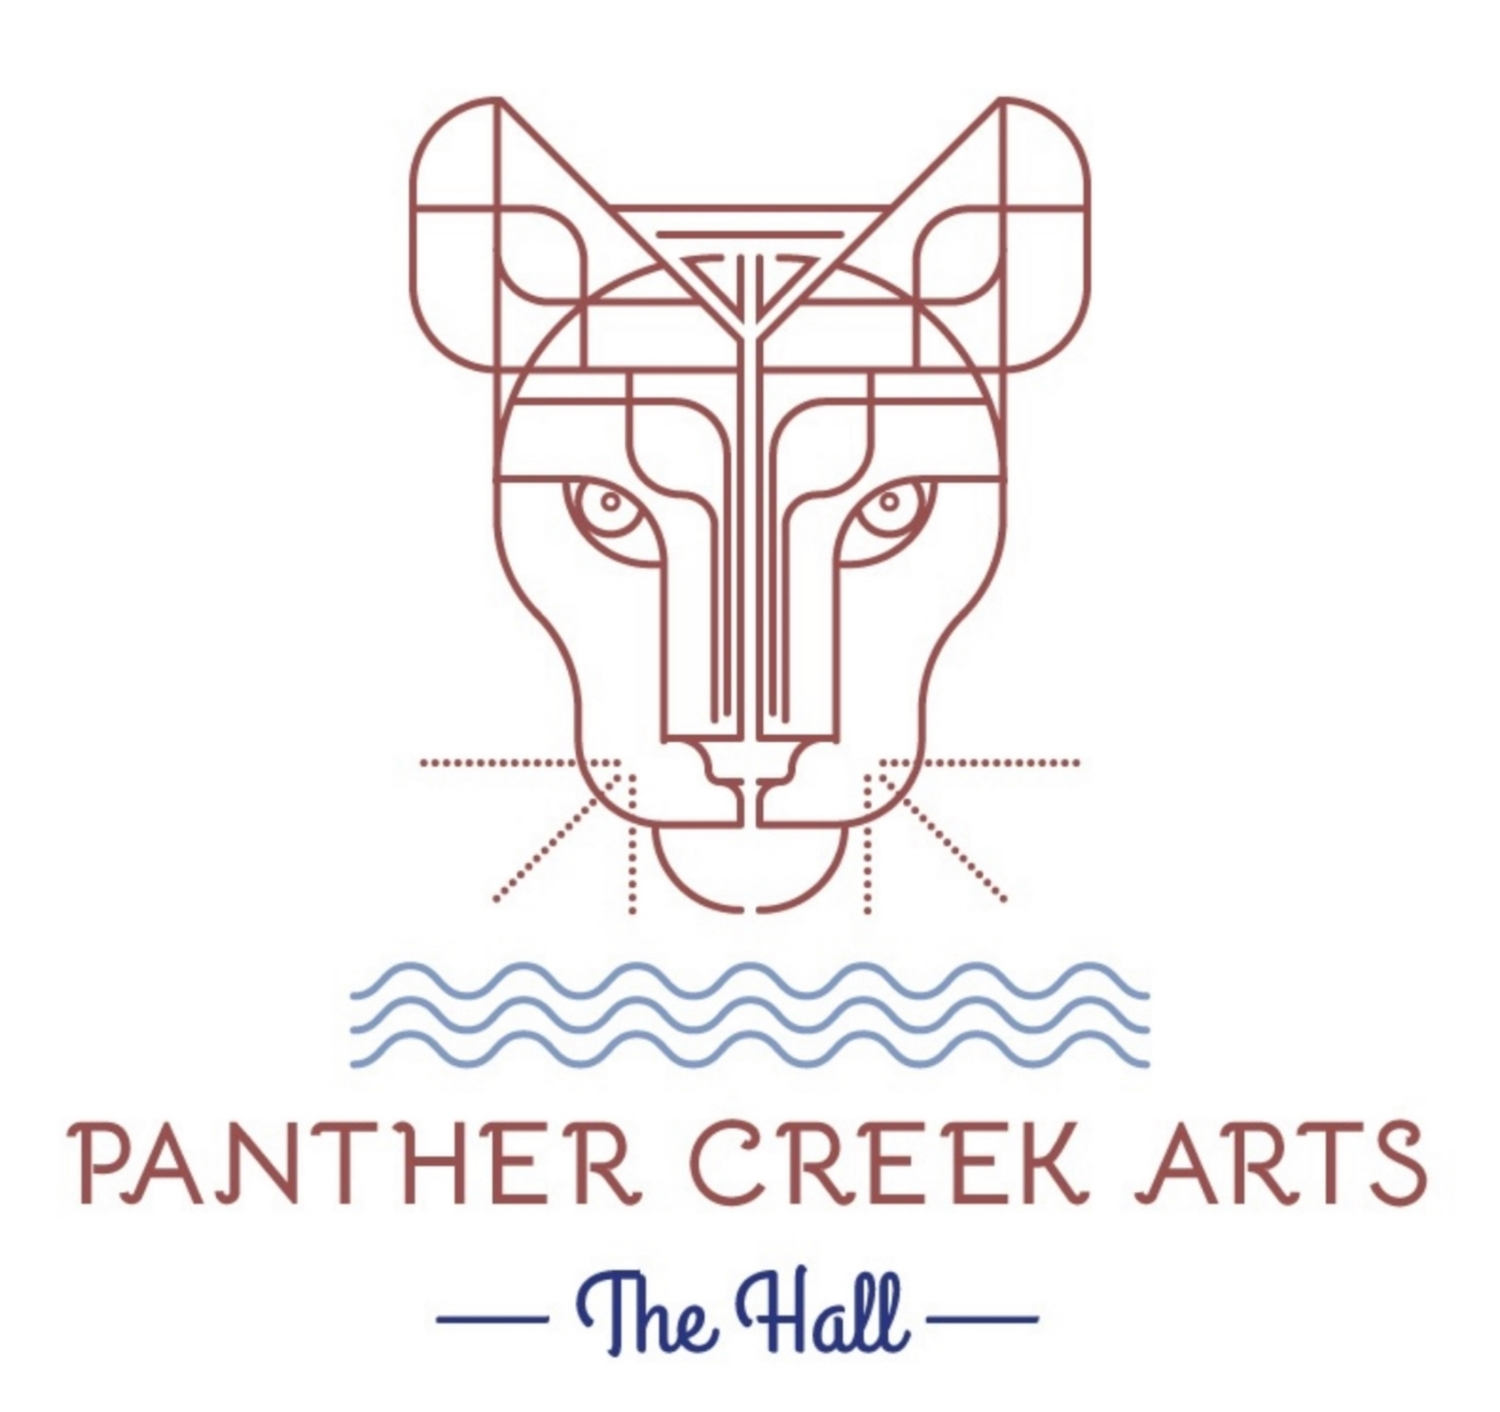 Panther Creek Arts